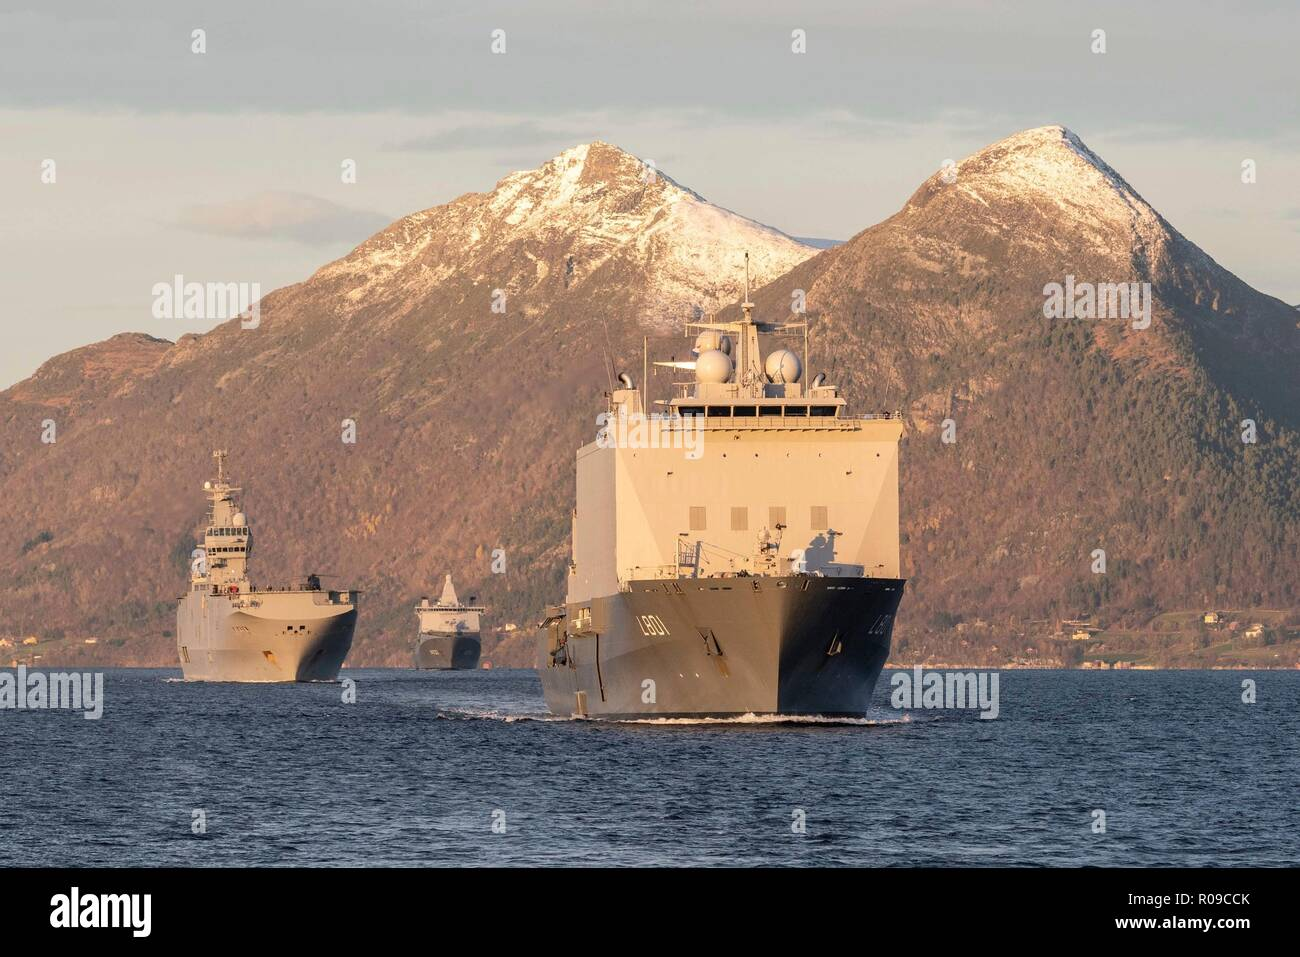 Molde Fjords, Norway. 01st Nov, 2018. The Royal Dutch Navy ship HNLMS Johan de Witt, right, escorts the French Naval ship Fs Dixmude in an Amphibious Assault during Exercise Trident Juncture 18 November 1, 2018 in Molde Fjords, Norway. The multi-national exercise is the largest NATO exercise since 2015, and includes more than 50,000 military members from 31 countries. Credit: Planetpix/Alamy Live News - Stock Image